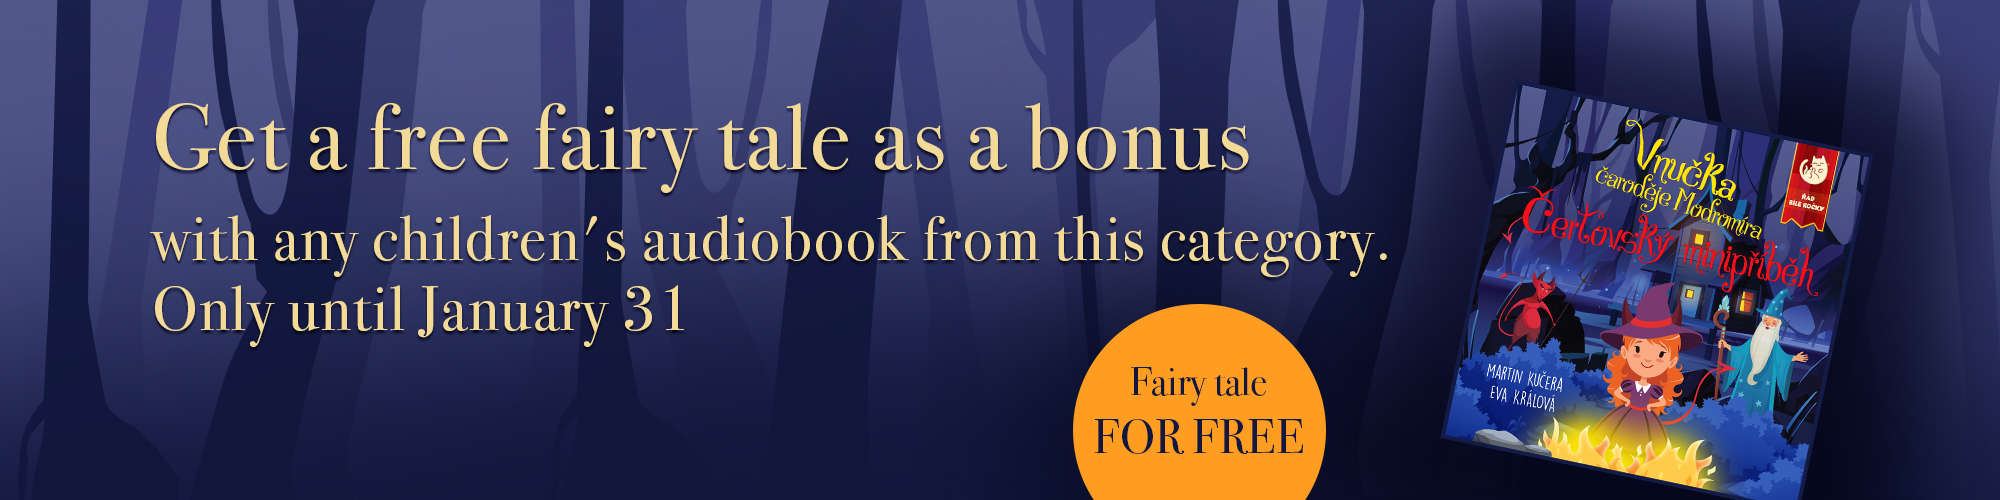 A fairy tale for free with any book from this category until the end of January